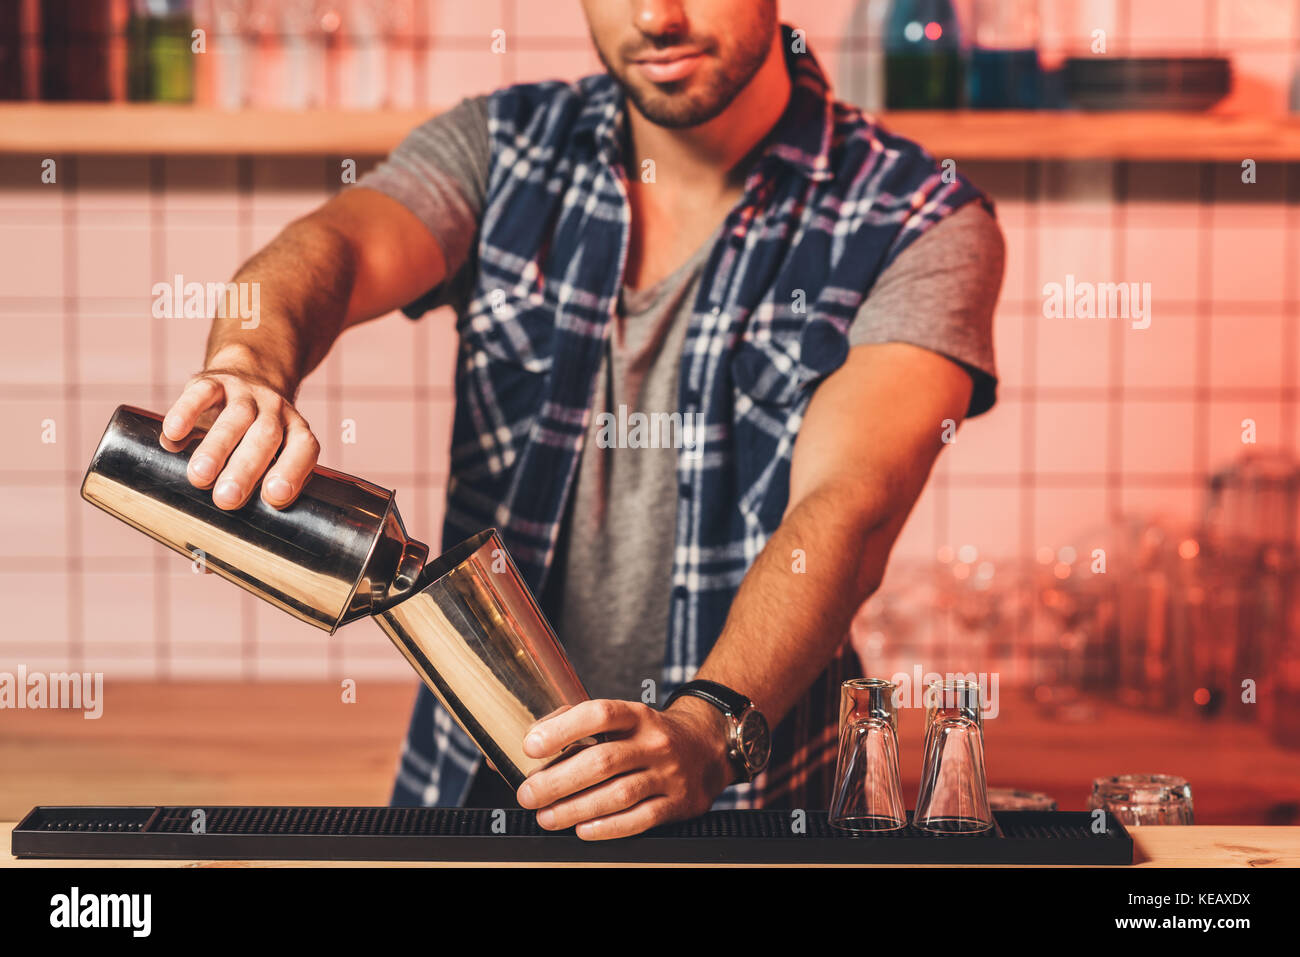 barman preparing cocktail - Stock Image